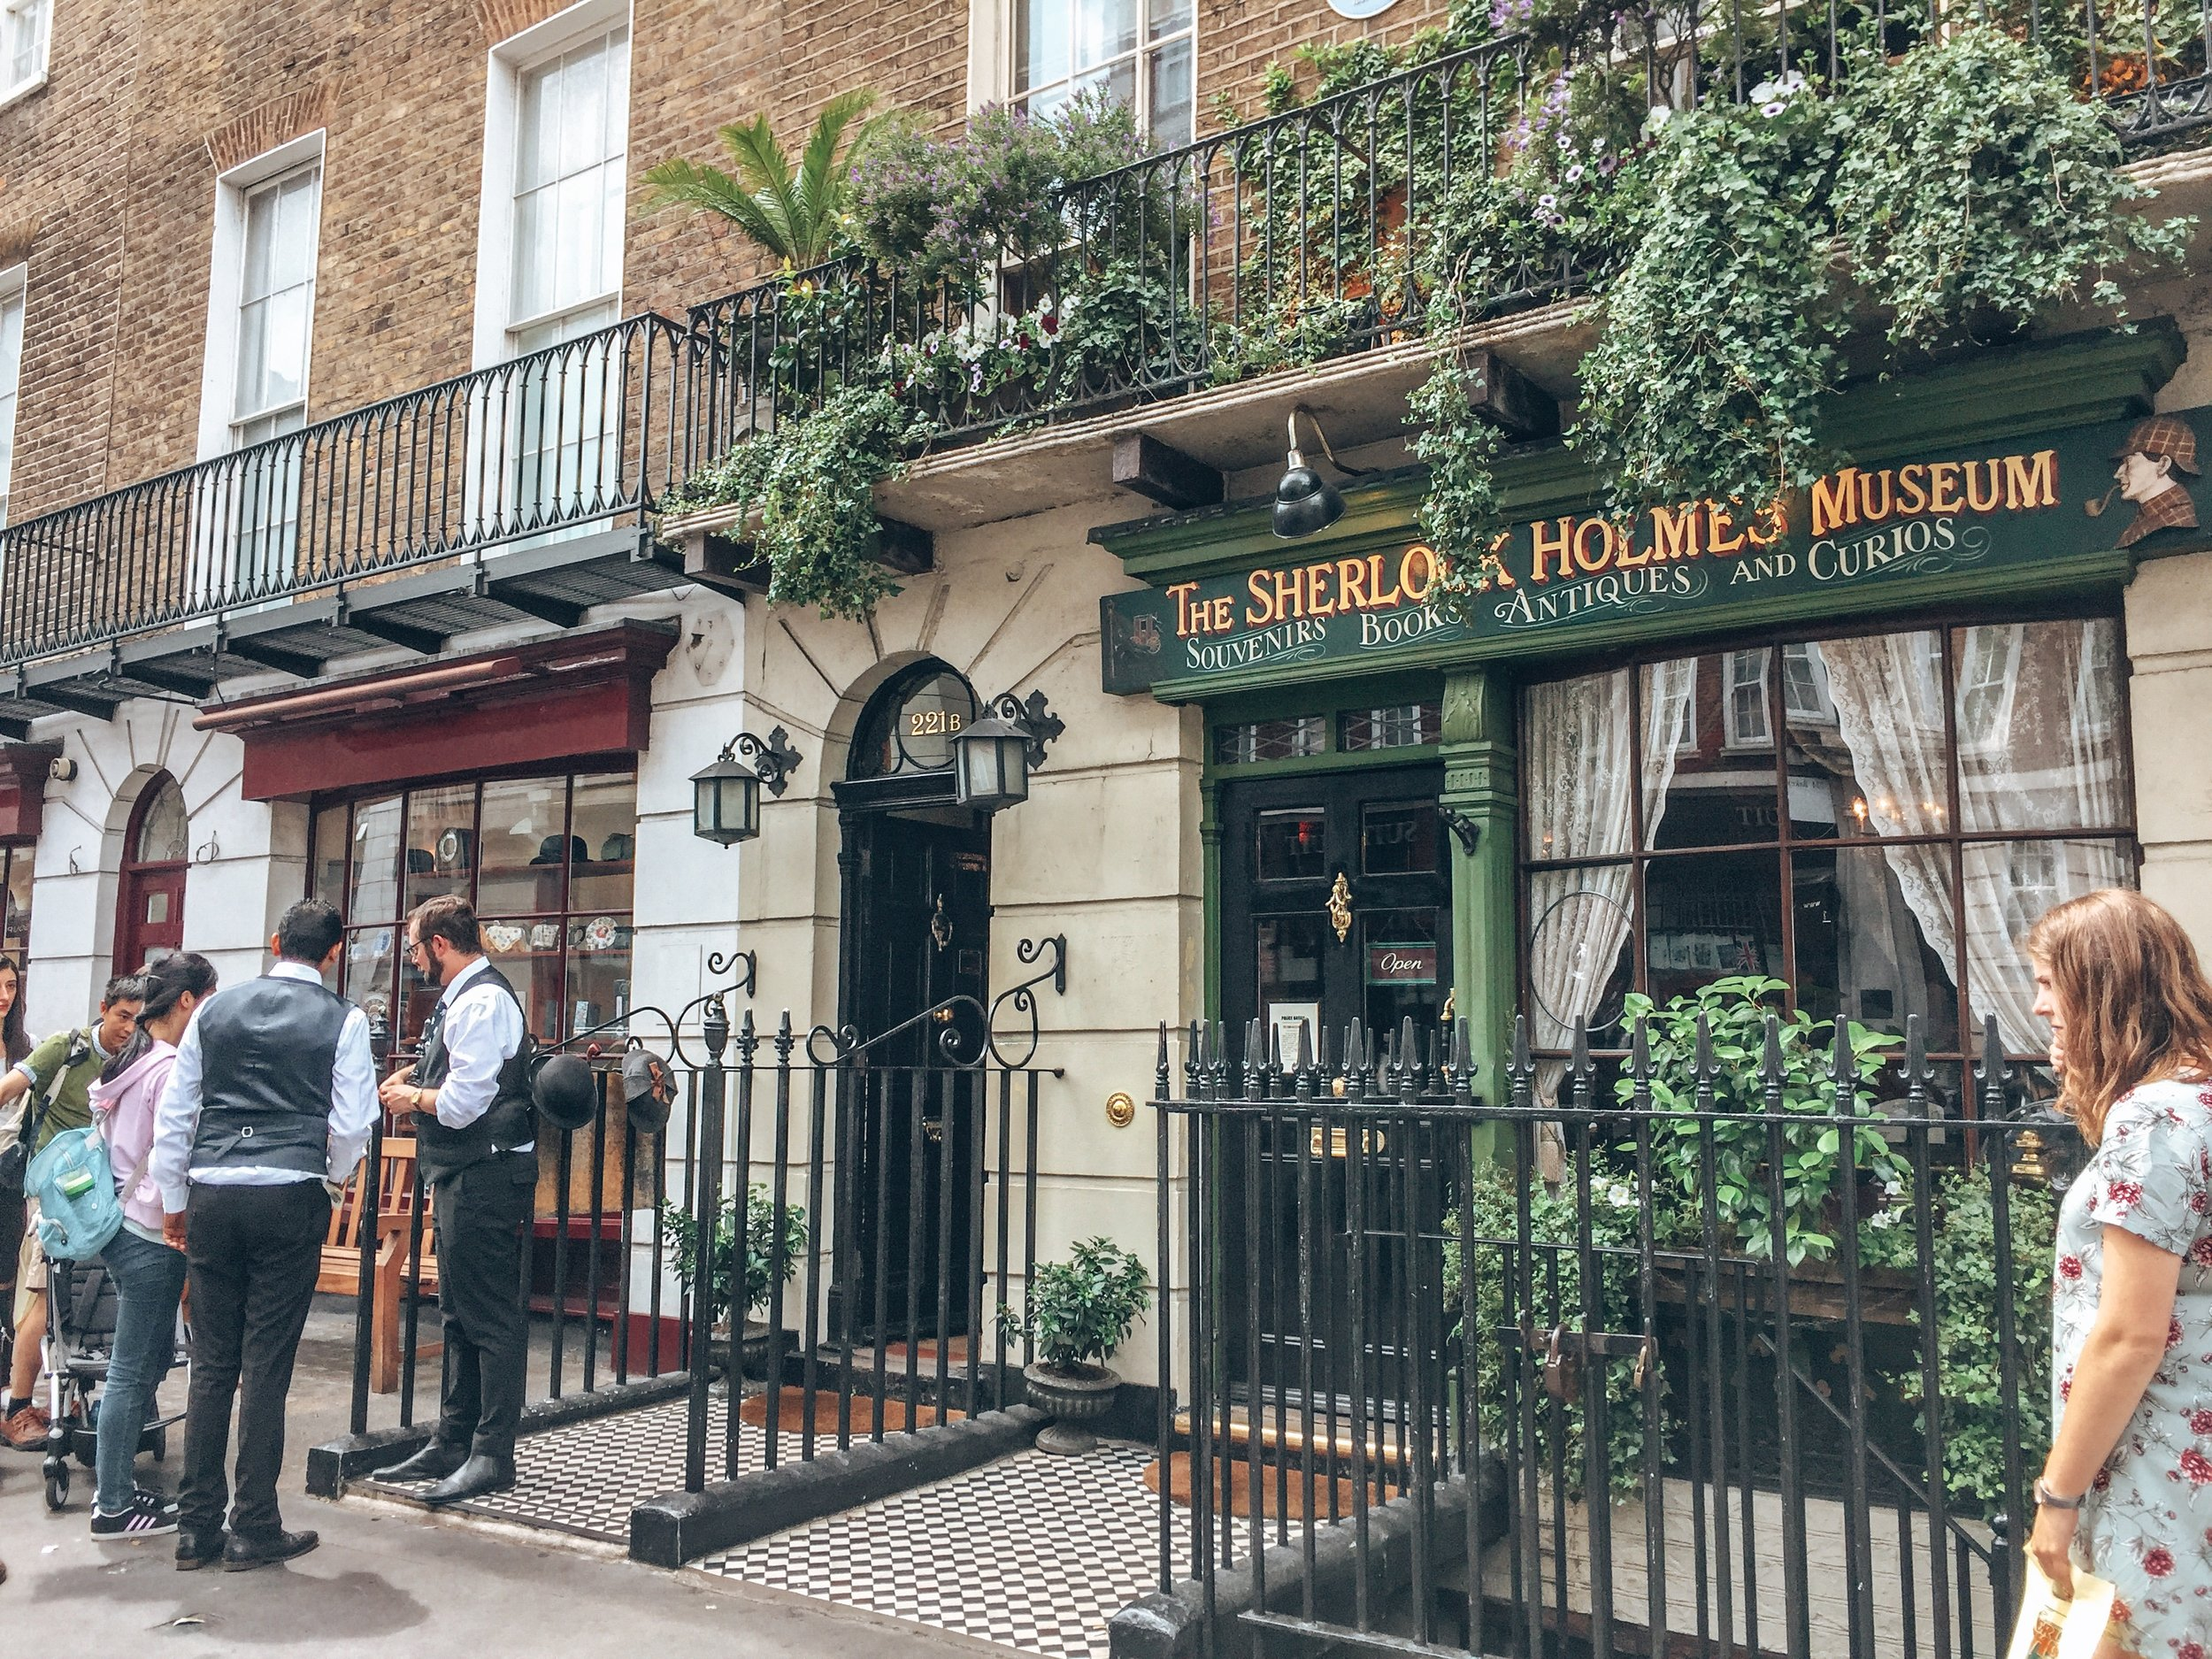 Entrance to the Sherlock Holmes Museum in London